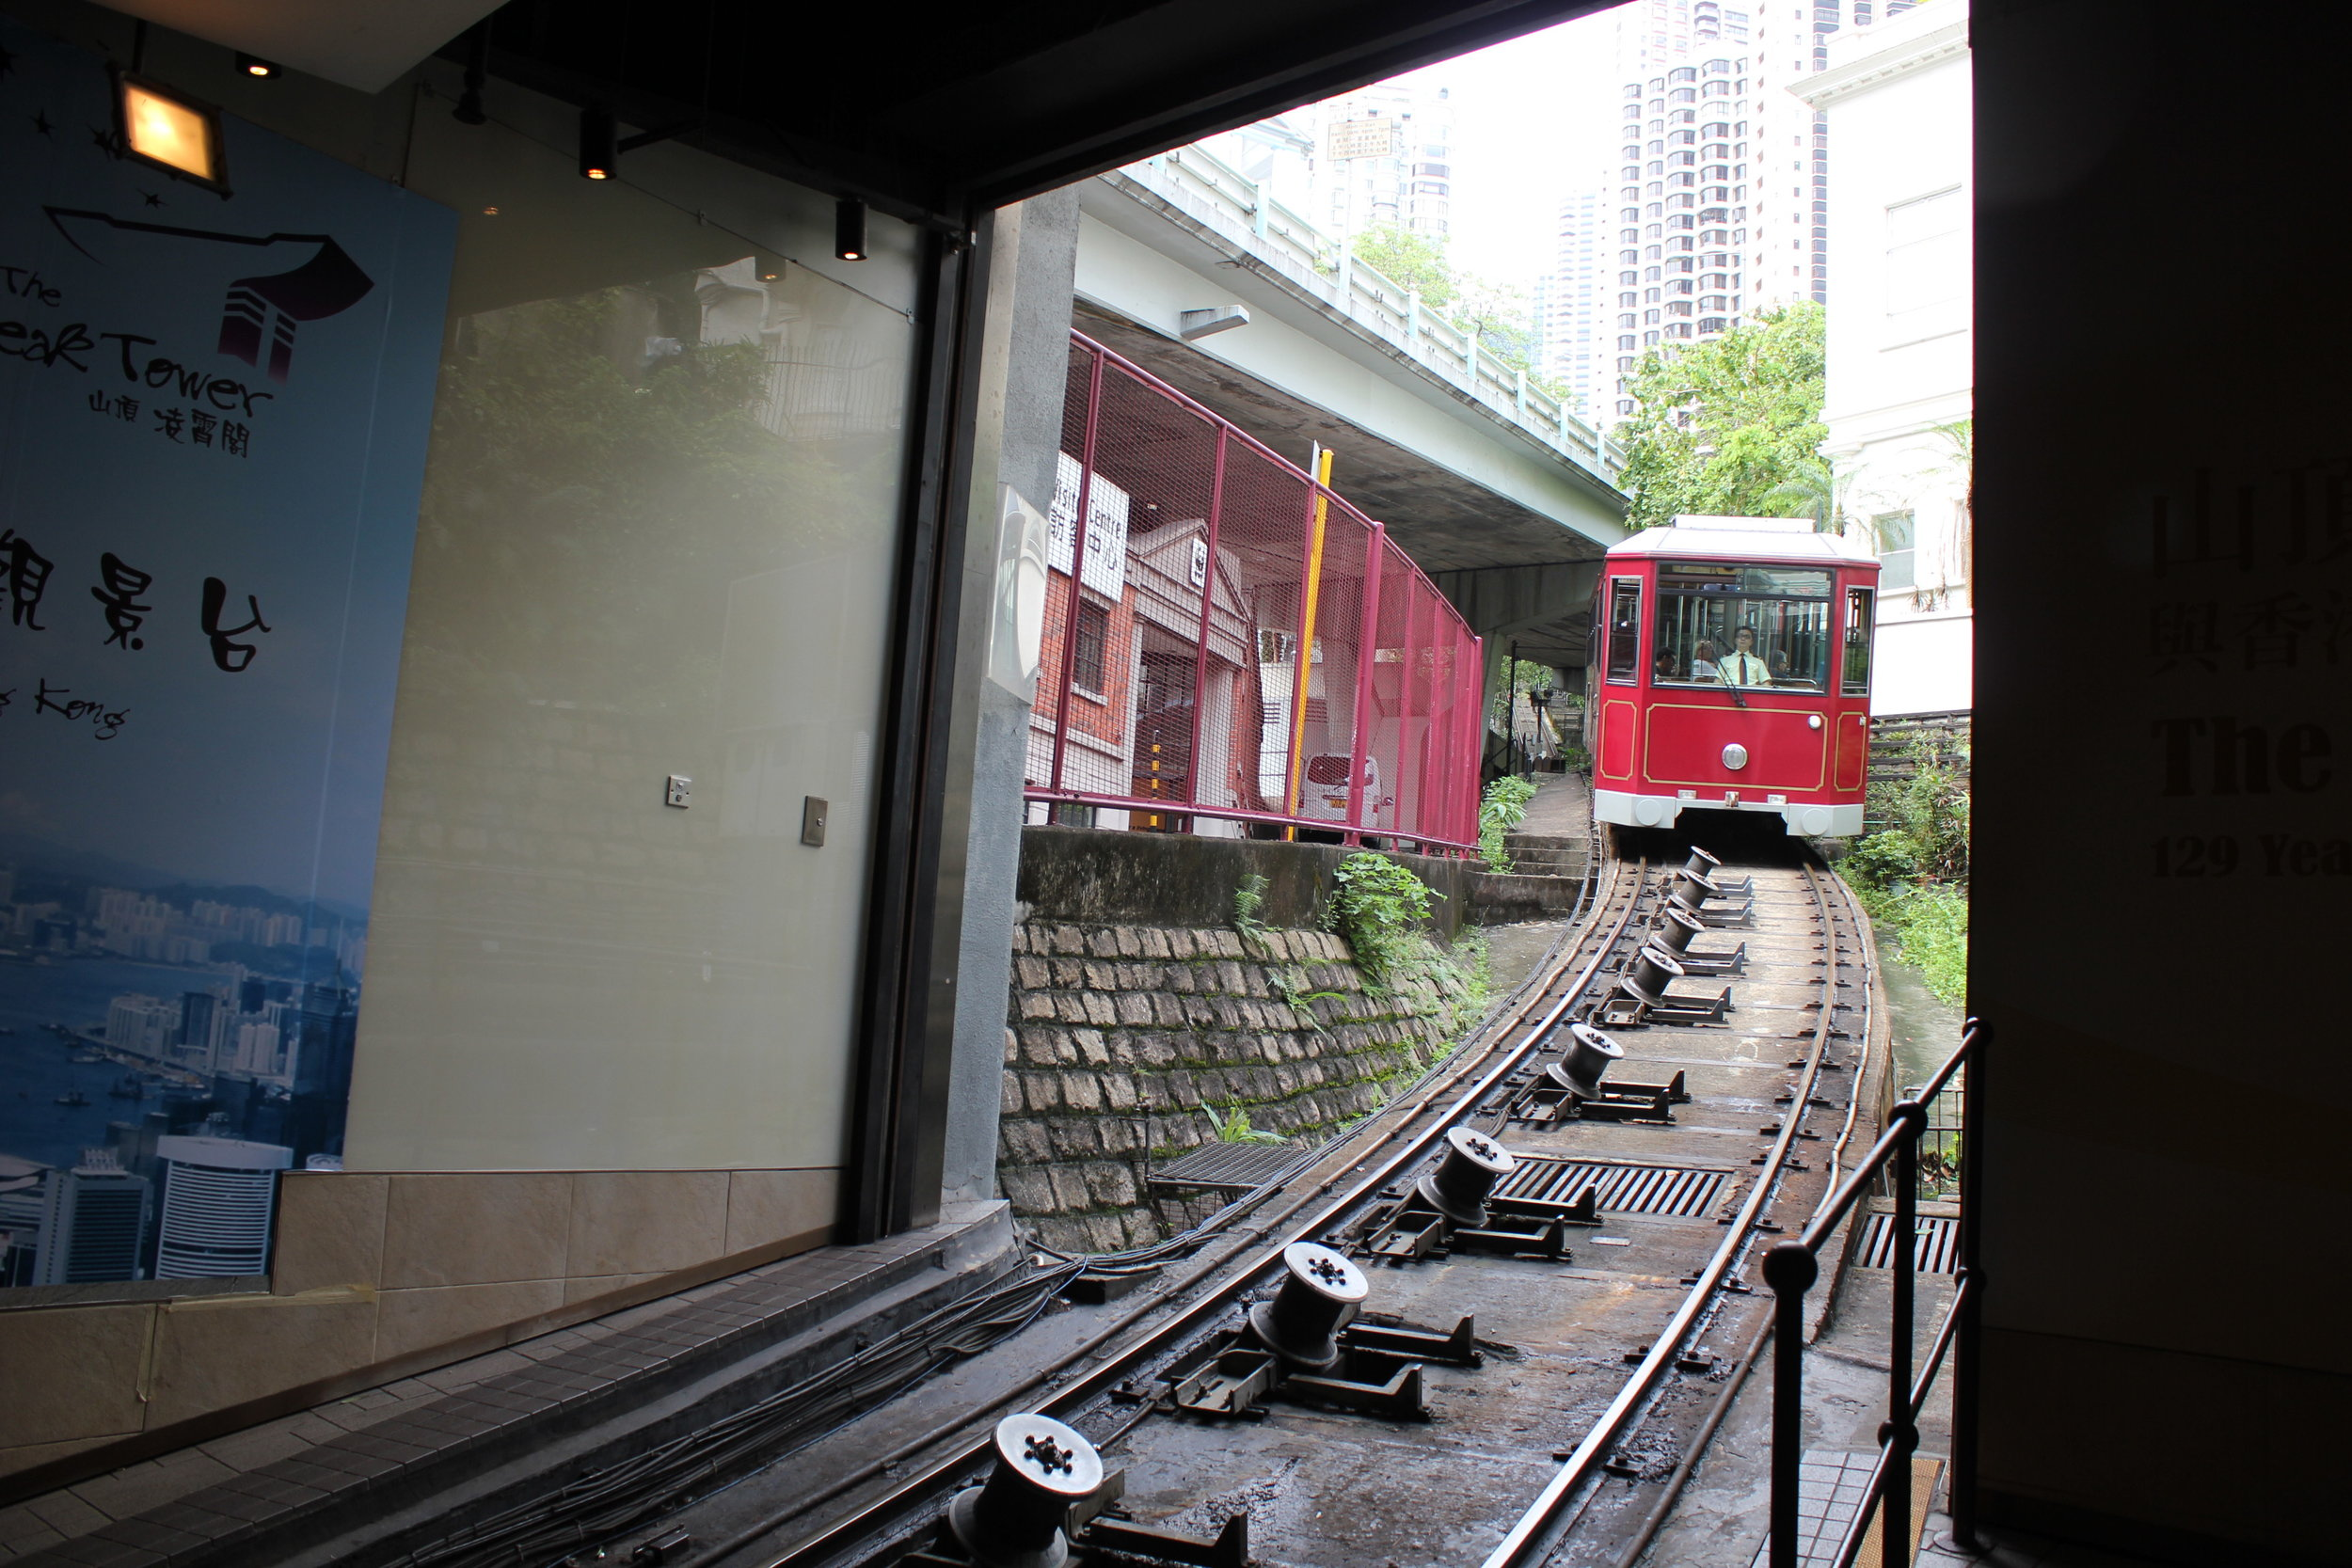 The Peak – Peak Tram approaching the station